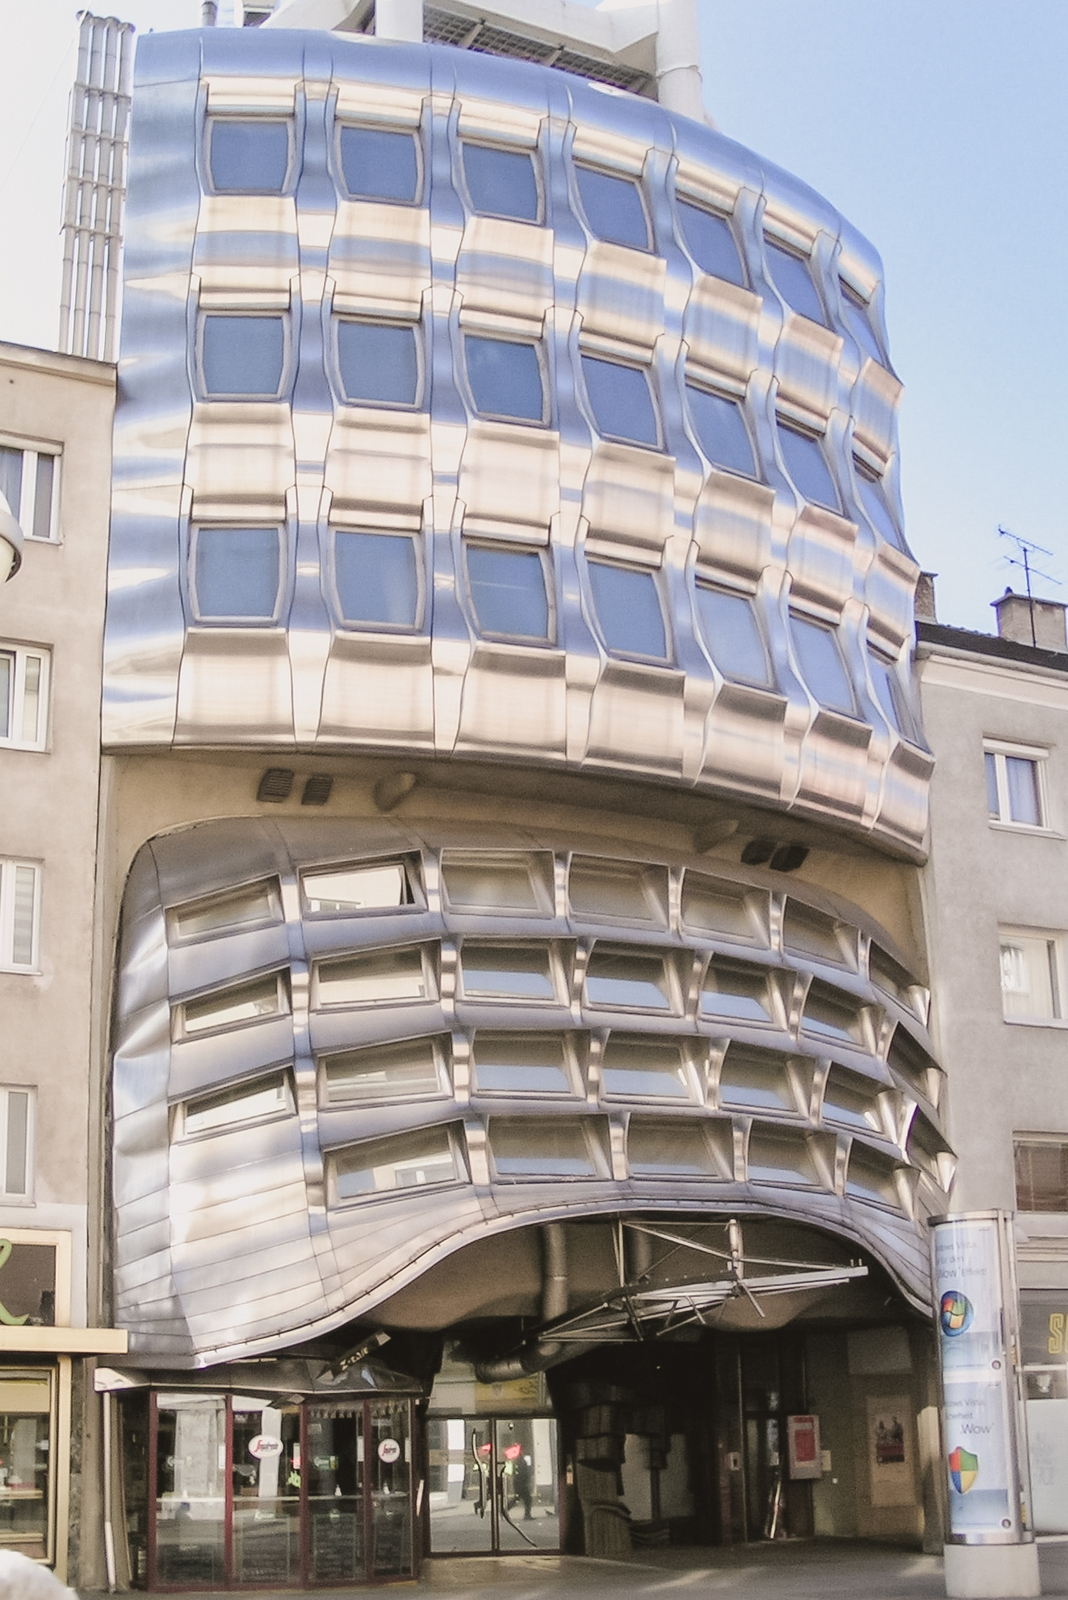 Domenig-Haus, one of the top 10 strangest buildings in Vienna - from travel blog: http:/Epepa.eu